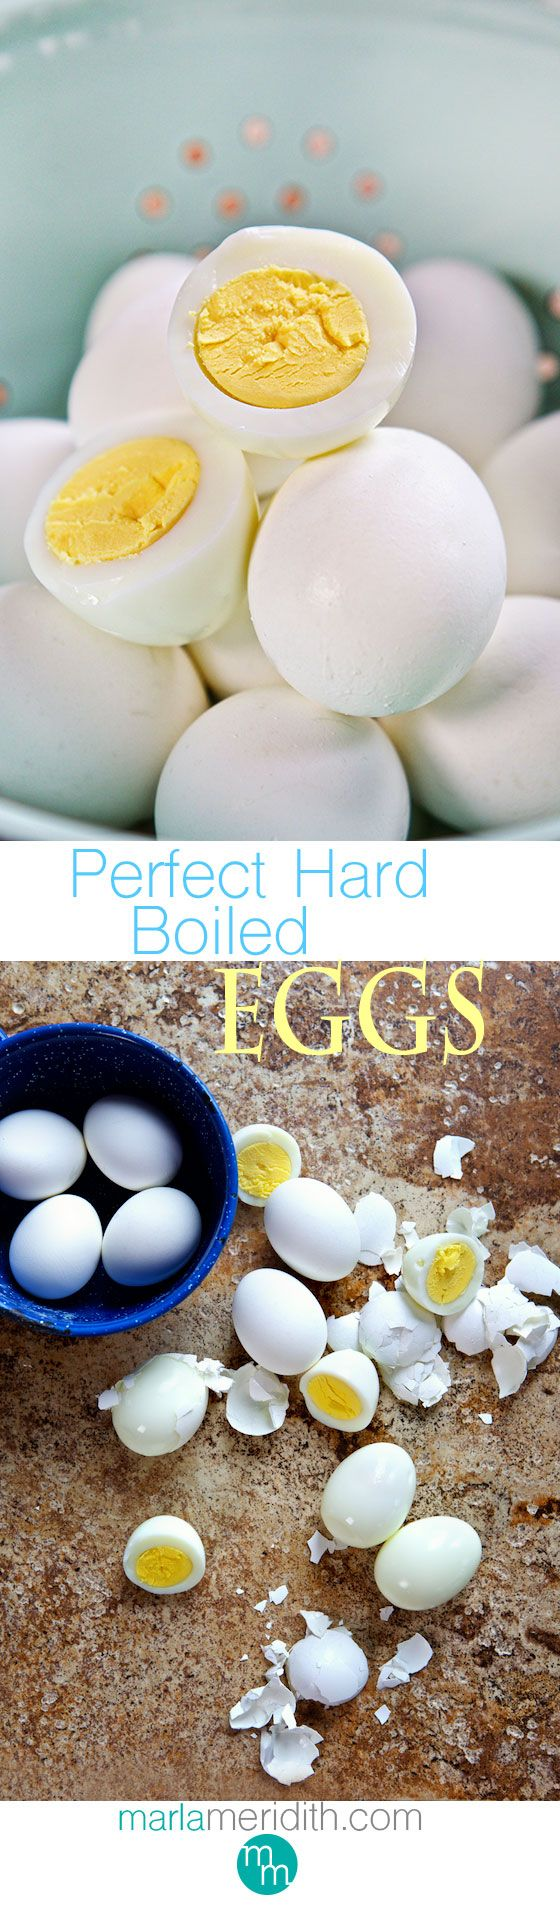 638 Best Images About Eggs On Pinterest  Perfect Hard Boiled Eggs,  Scrambled Eggs And Scotch Eggs